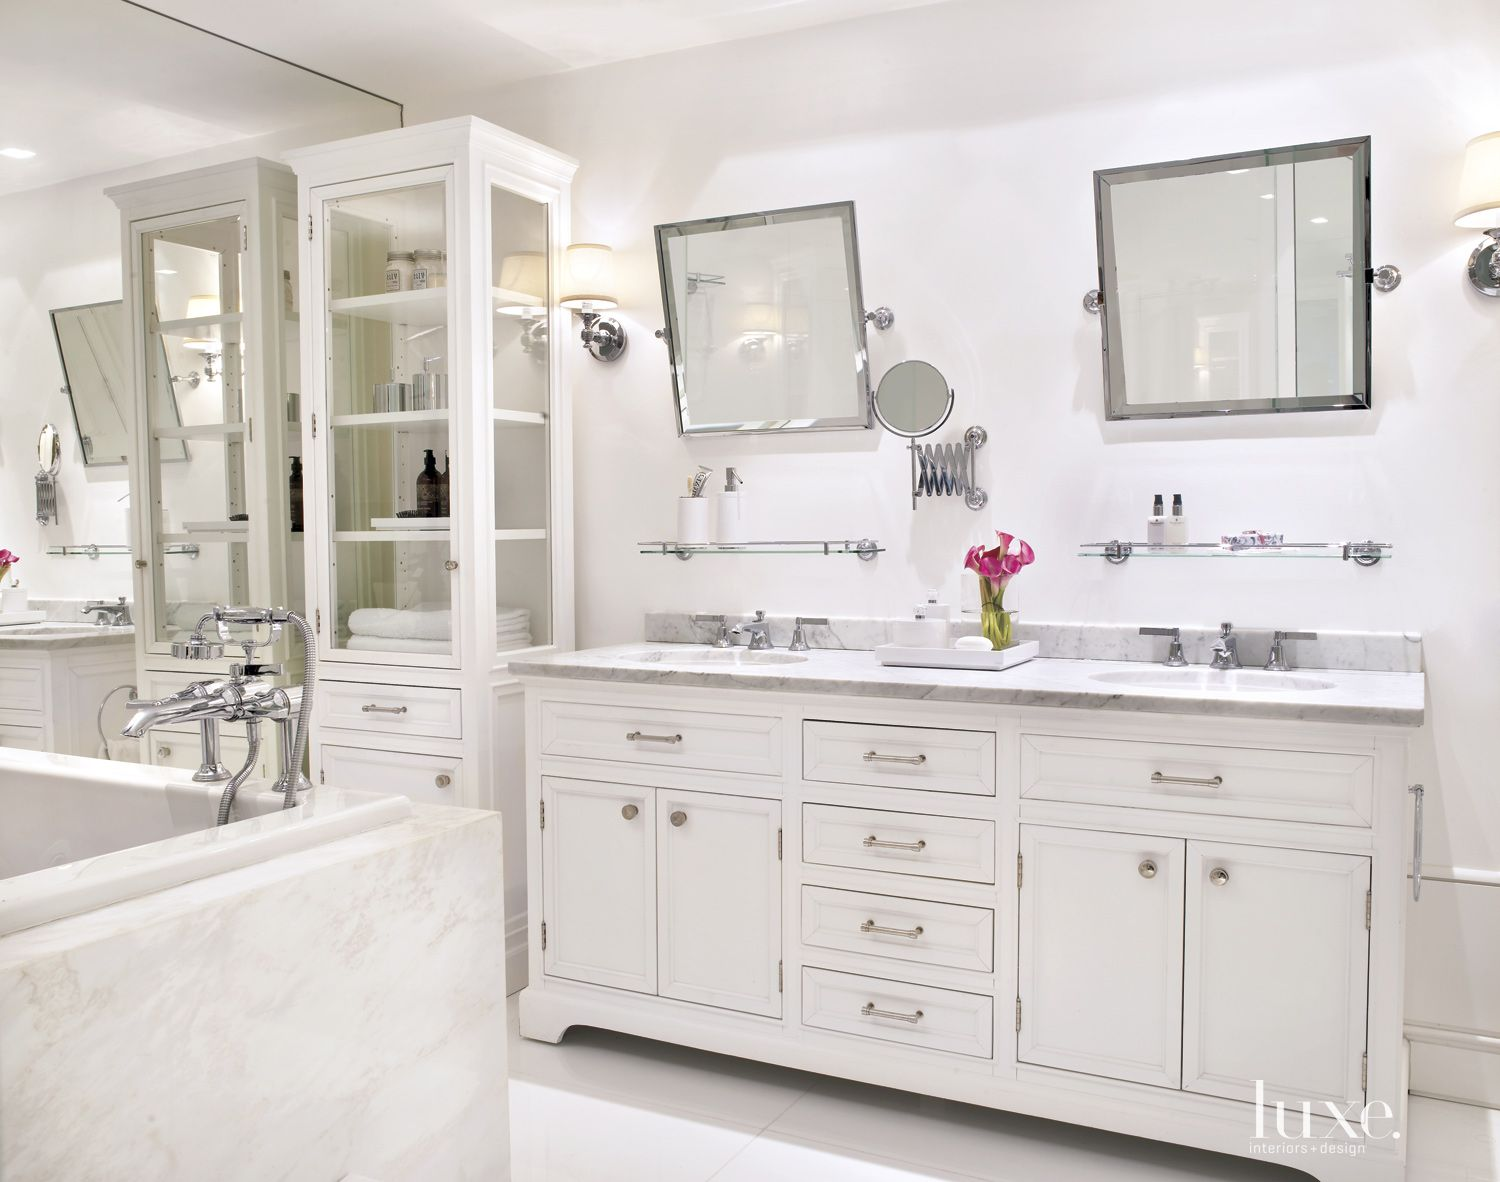 Modern White Bathroom with Tall White Cabinets